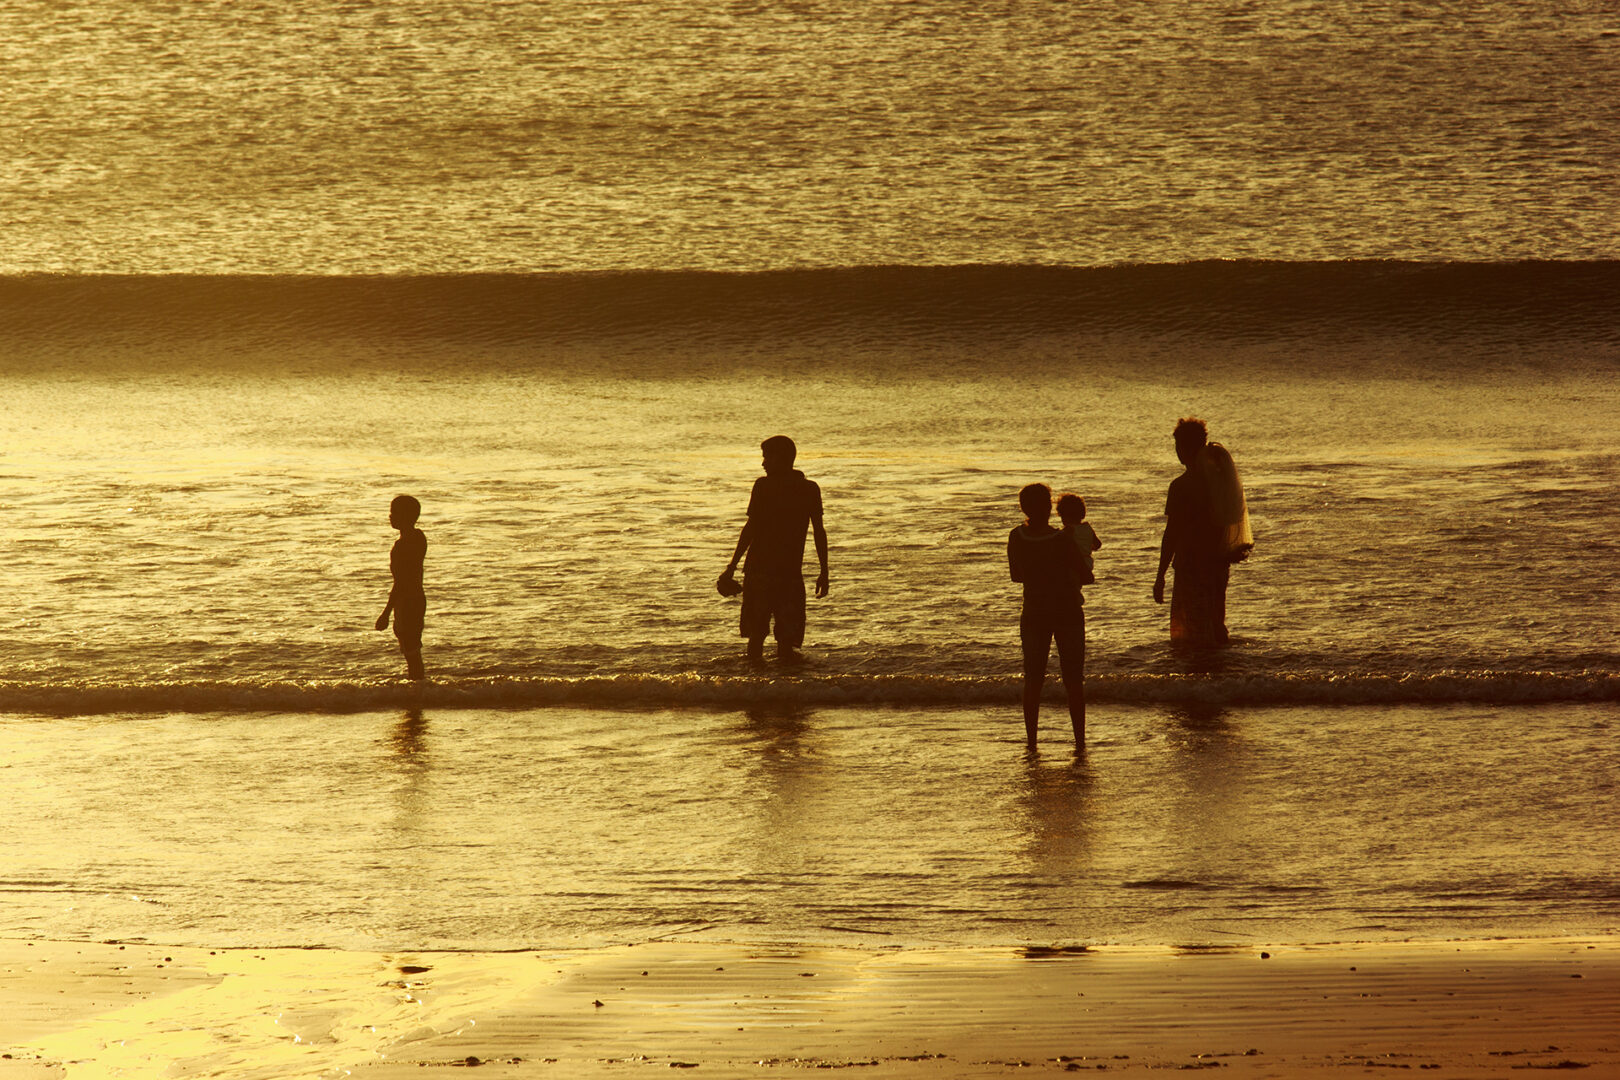 Copy of FAMILY AT BEACH luke-mckeown-381540-unsplash copy - Copy